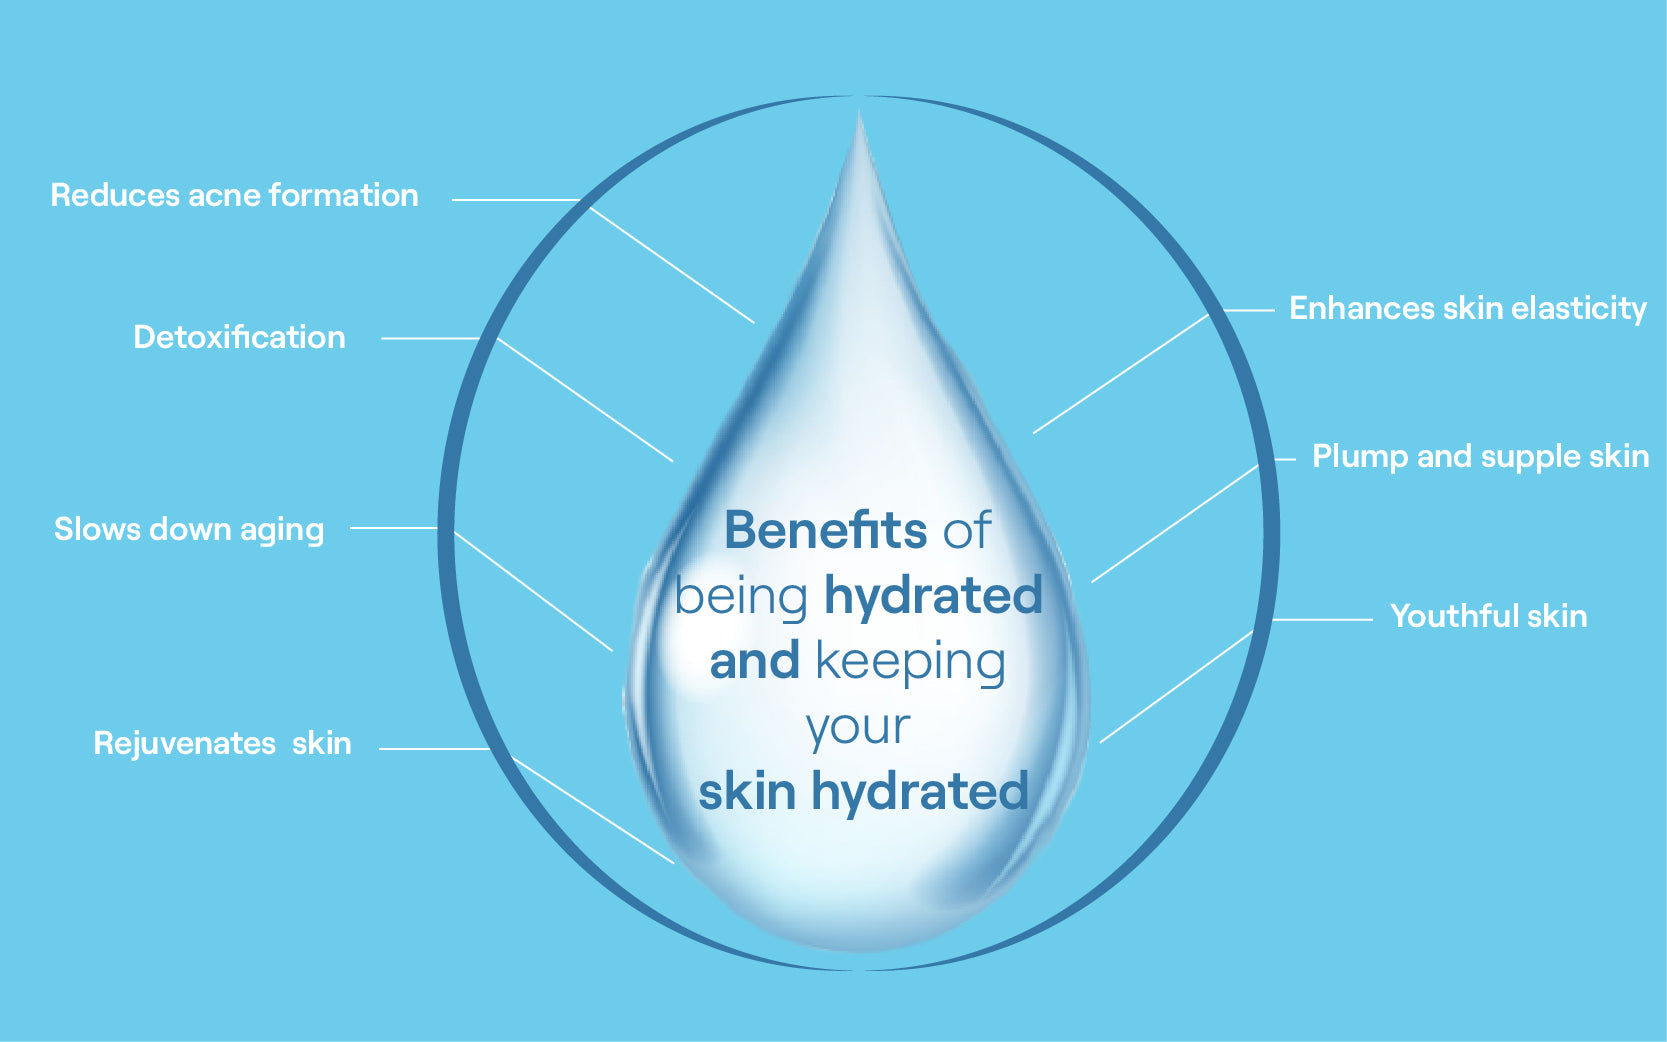 How Can I Keep My Skin Hydrated And Youthful